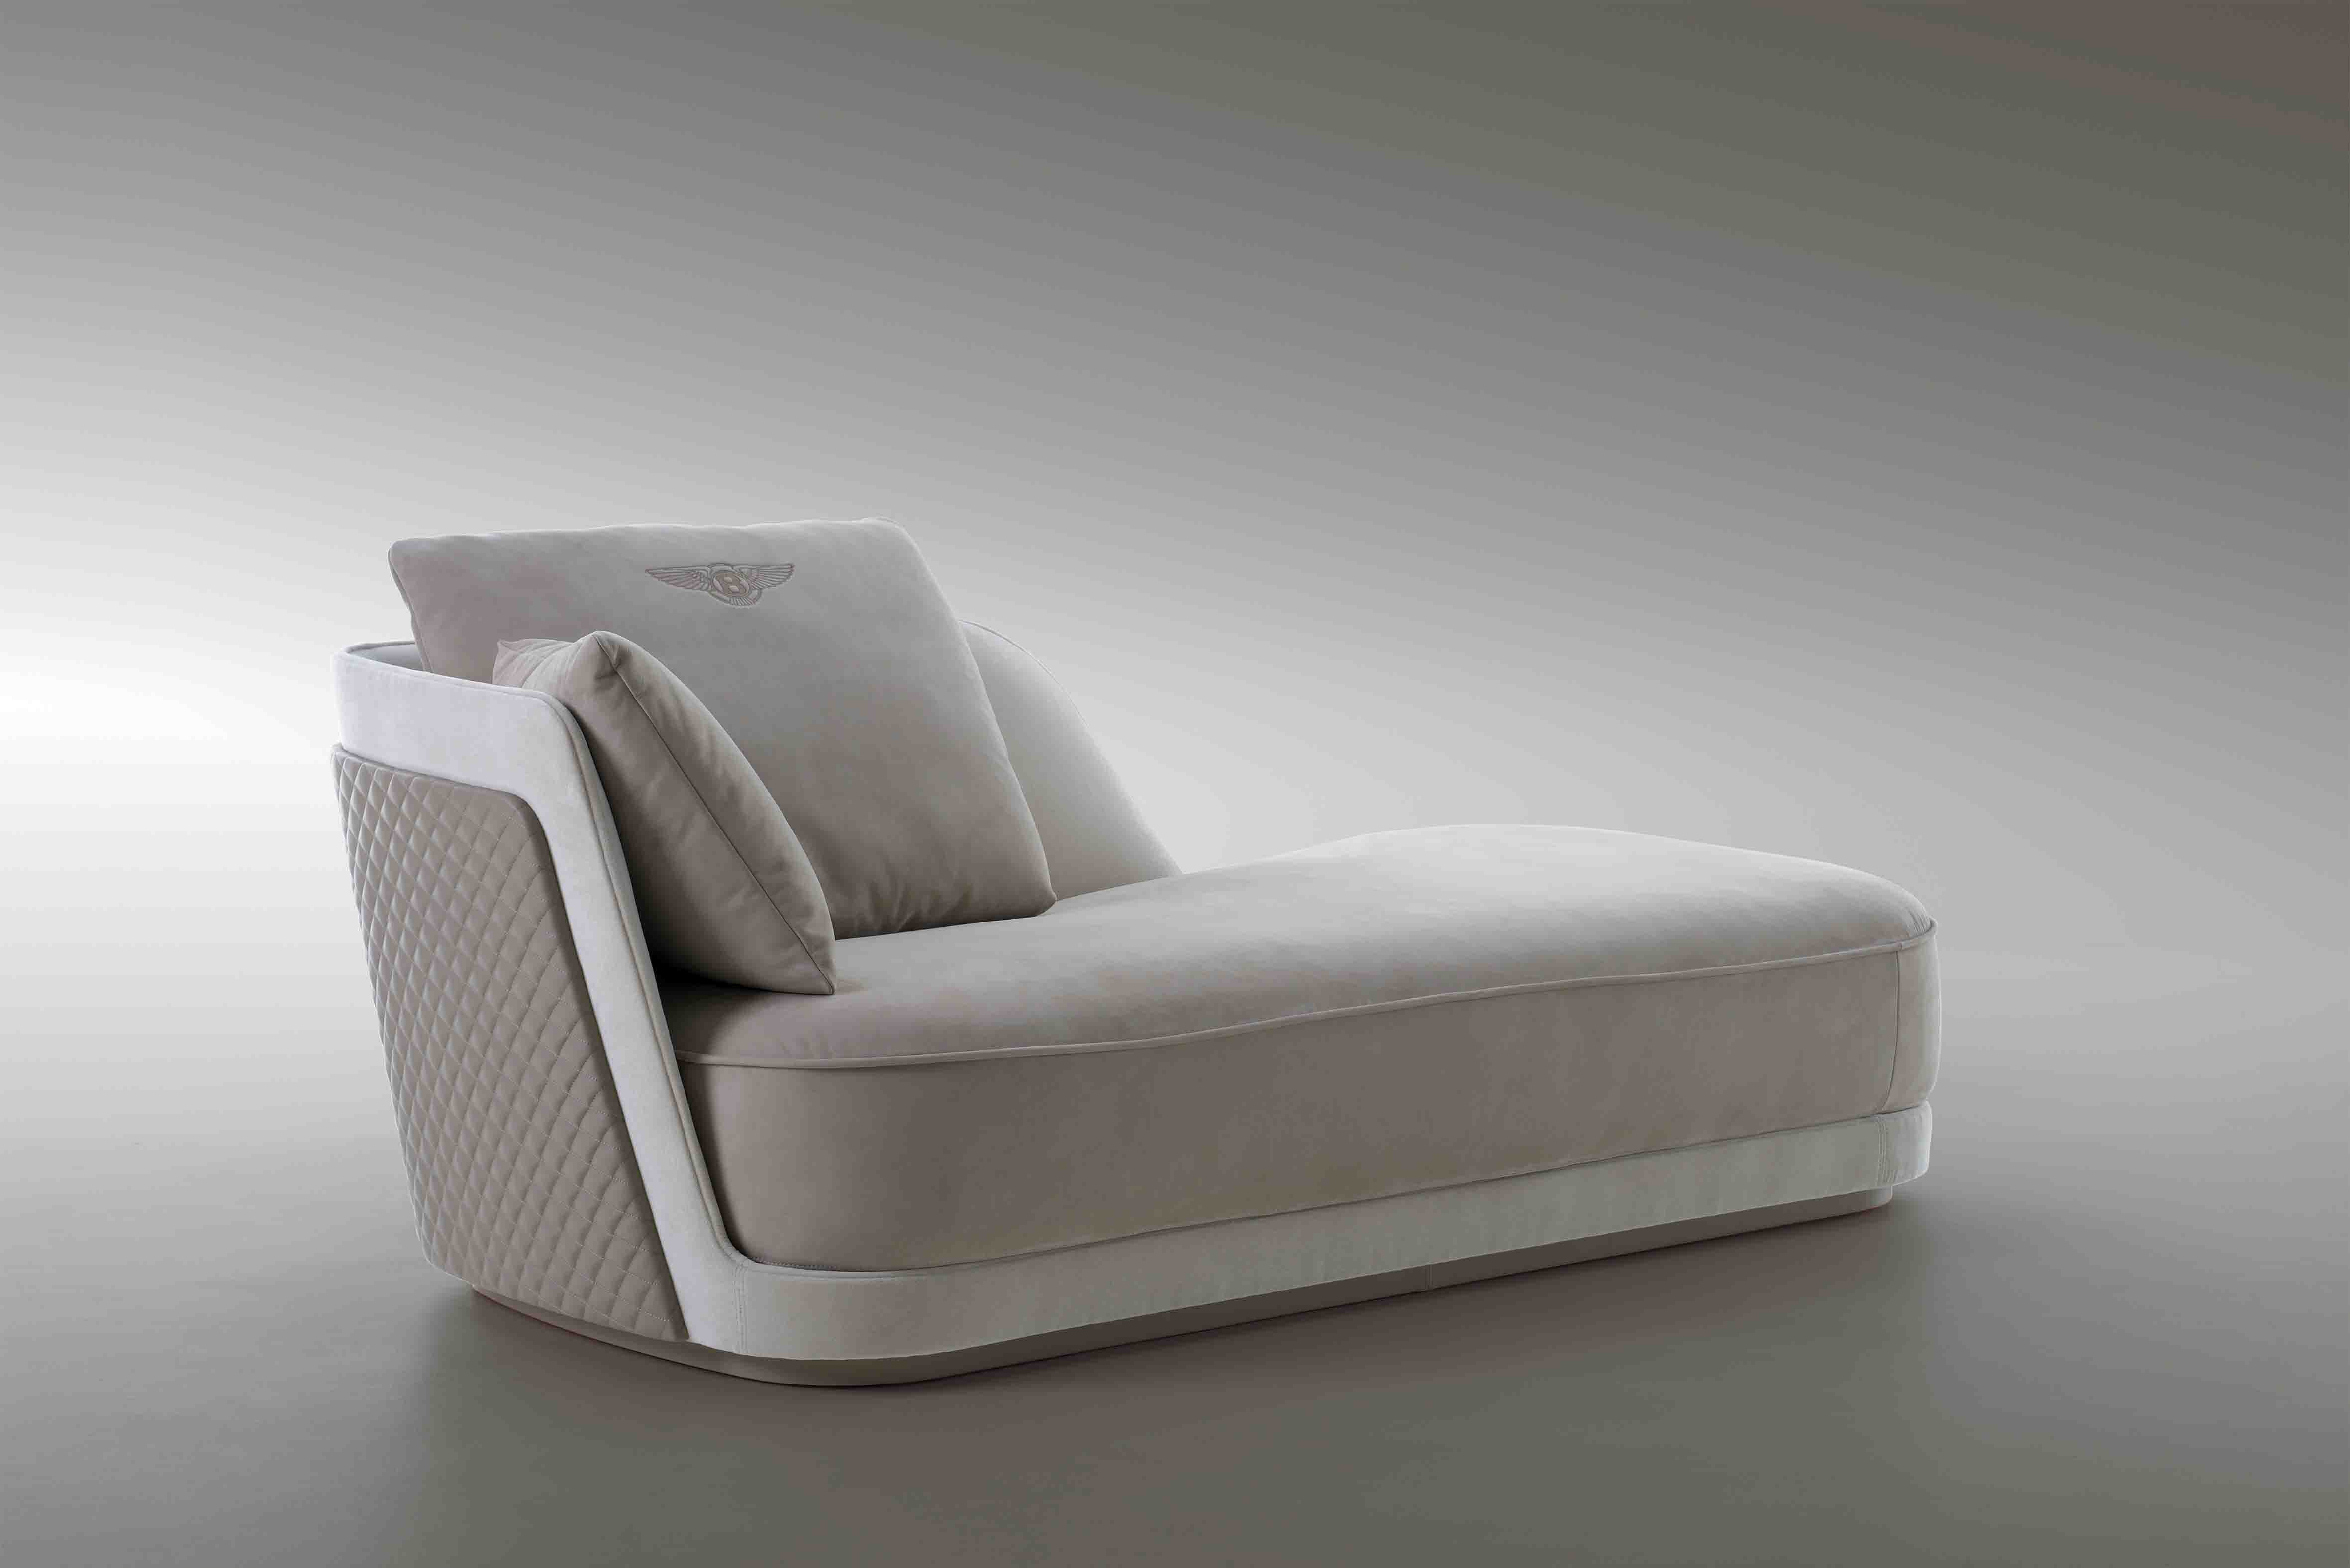 bentley recliner sofa loveseat and armchair set leather covers new furniture items fashionable home blog